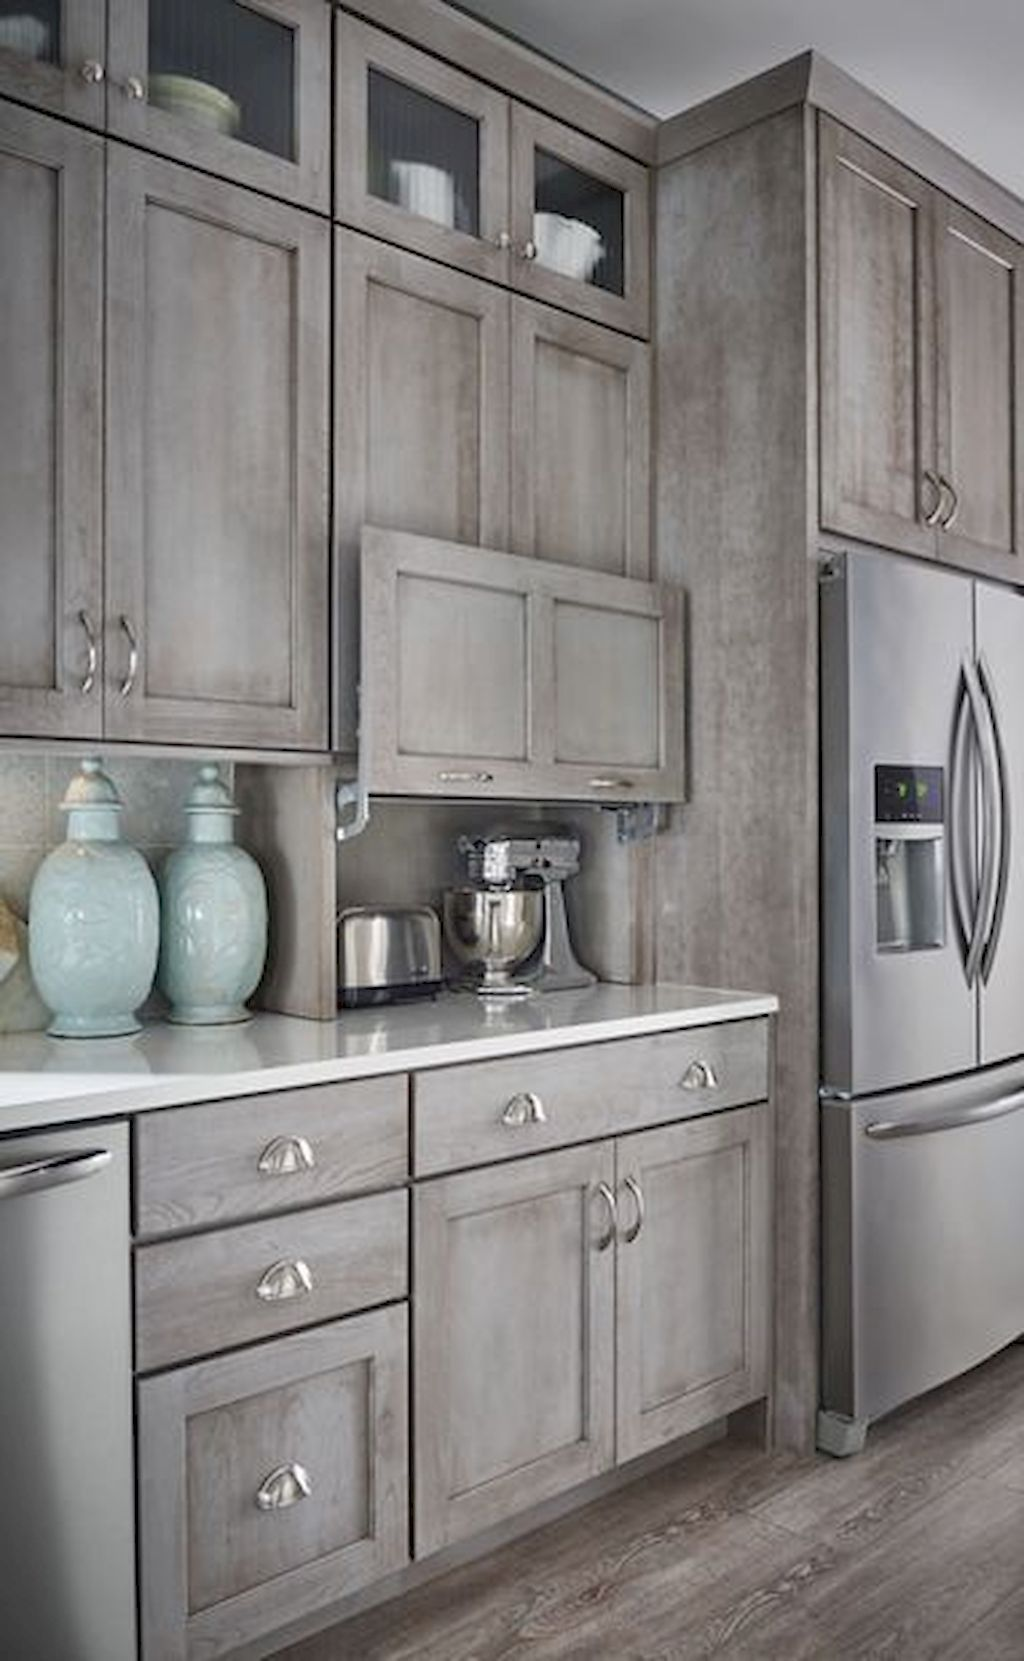 90 Rustic Kitchen Cabinets Farmhouse Style Ideas 26 Kitchen In